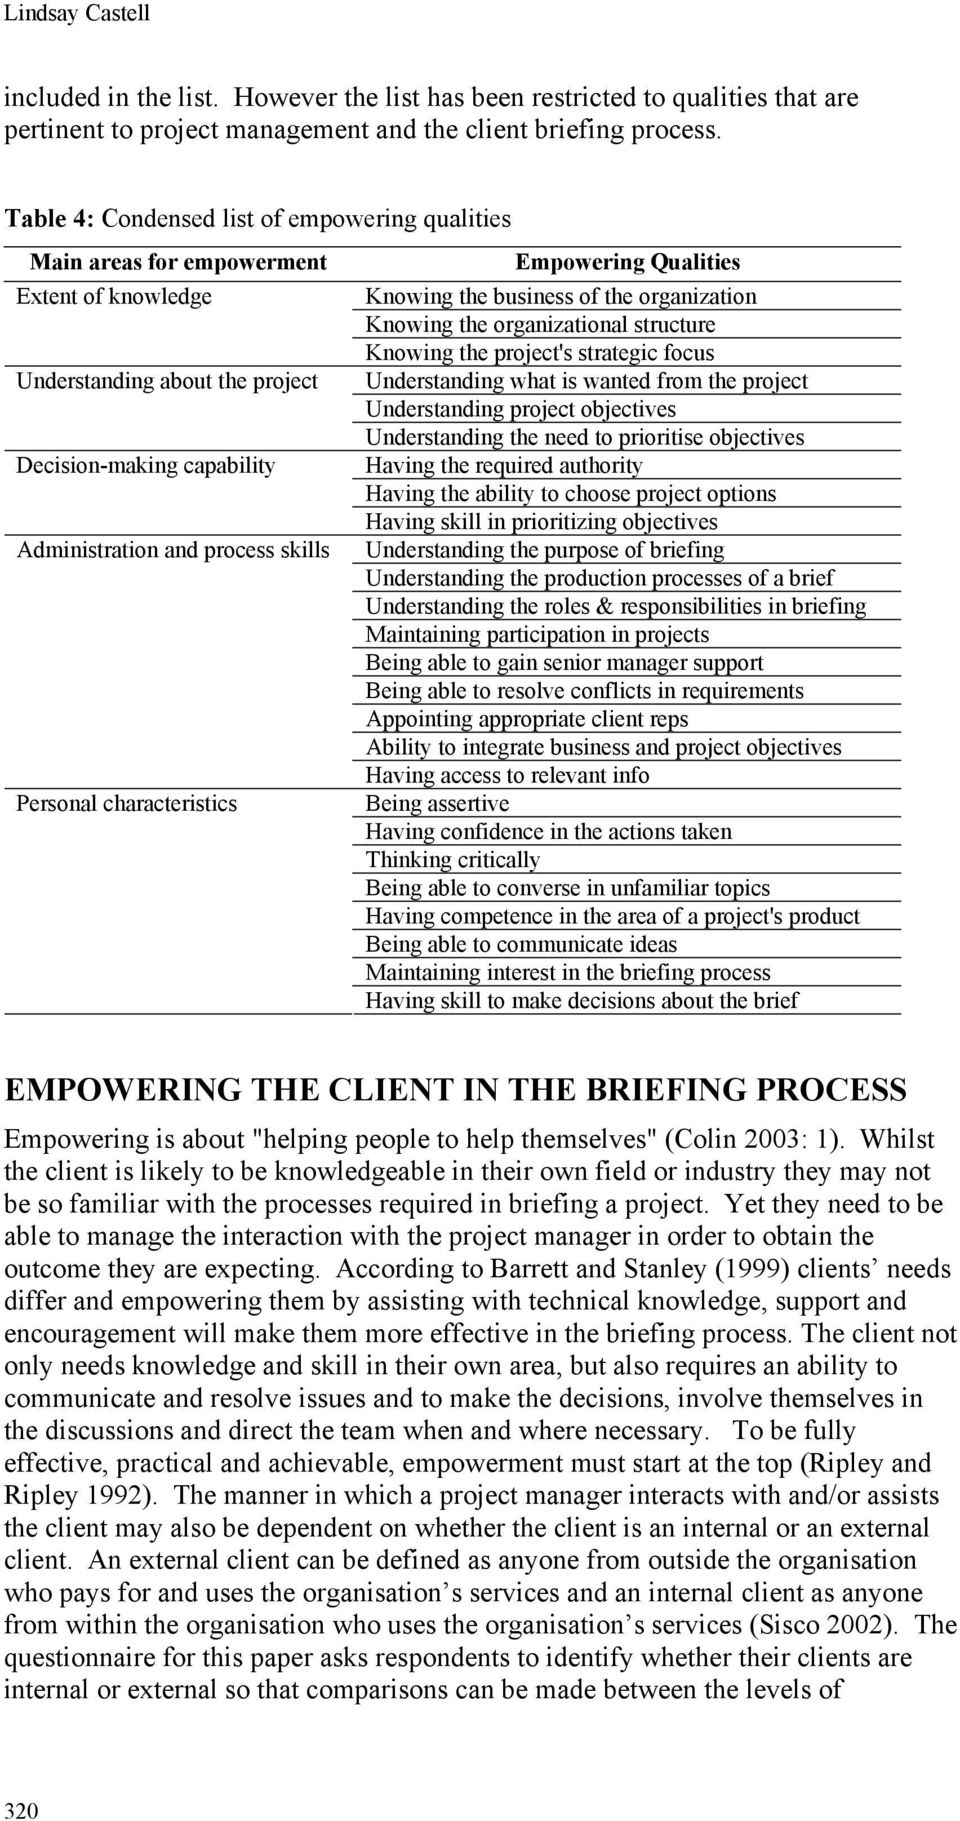 characteristics Empowering Qualities Knowing the business of the organization Knowing the organizational structure Knowing the project's strategic focus Understanding what is wanted from the project